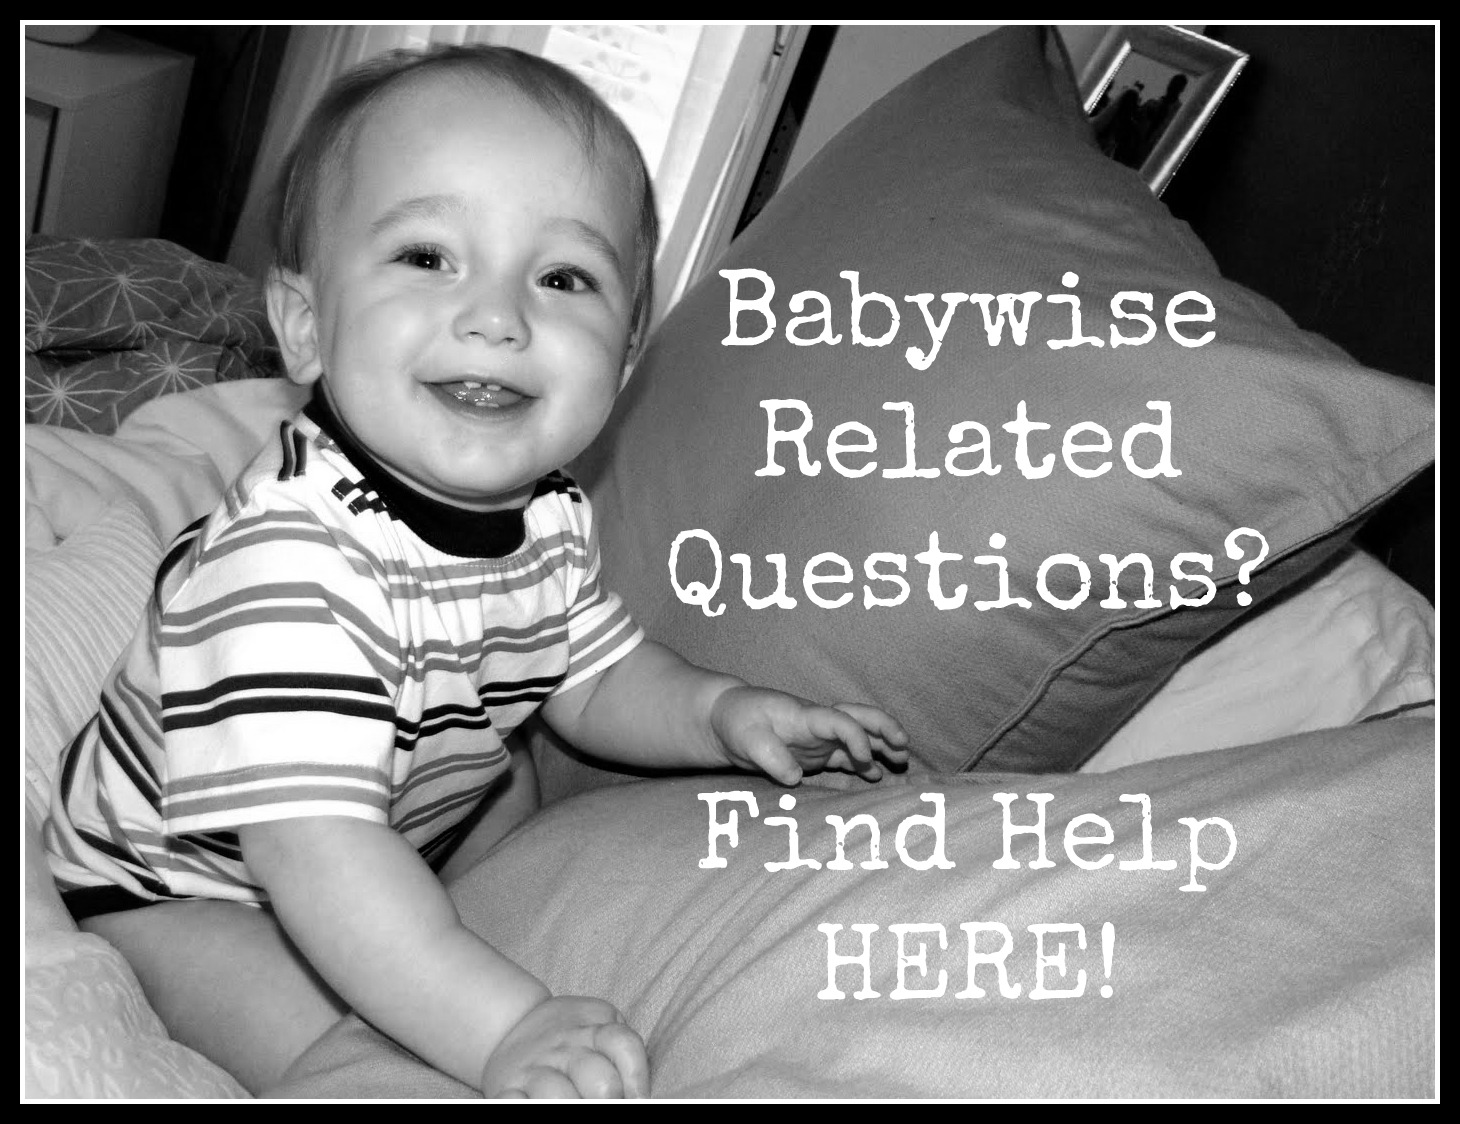 Babywise Support: Where to find Help!